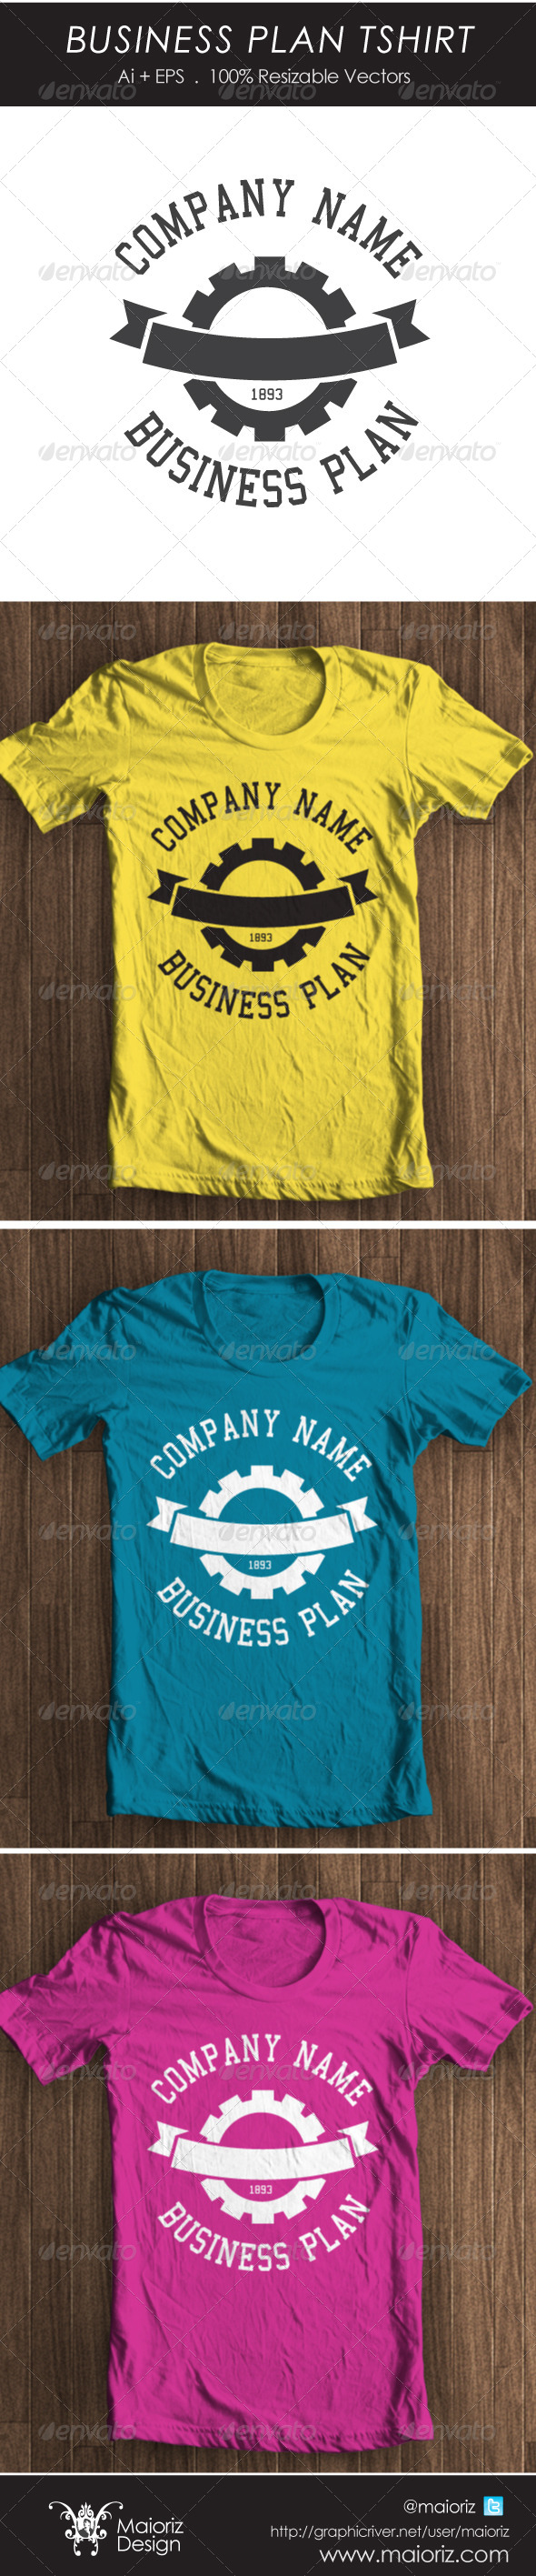 Business Plan Tshirt - Business T-Shirts